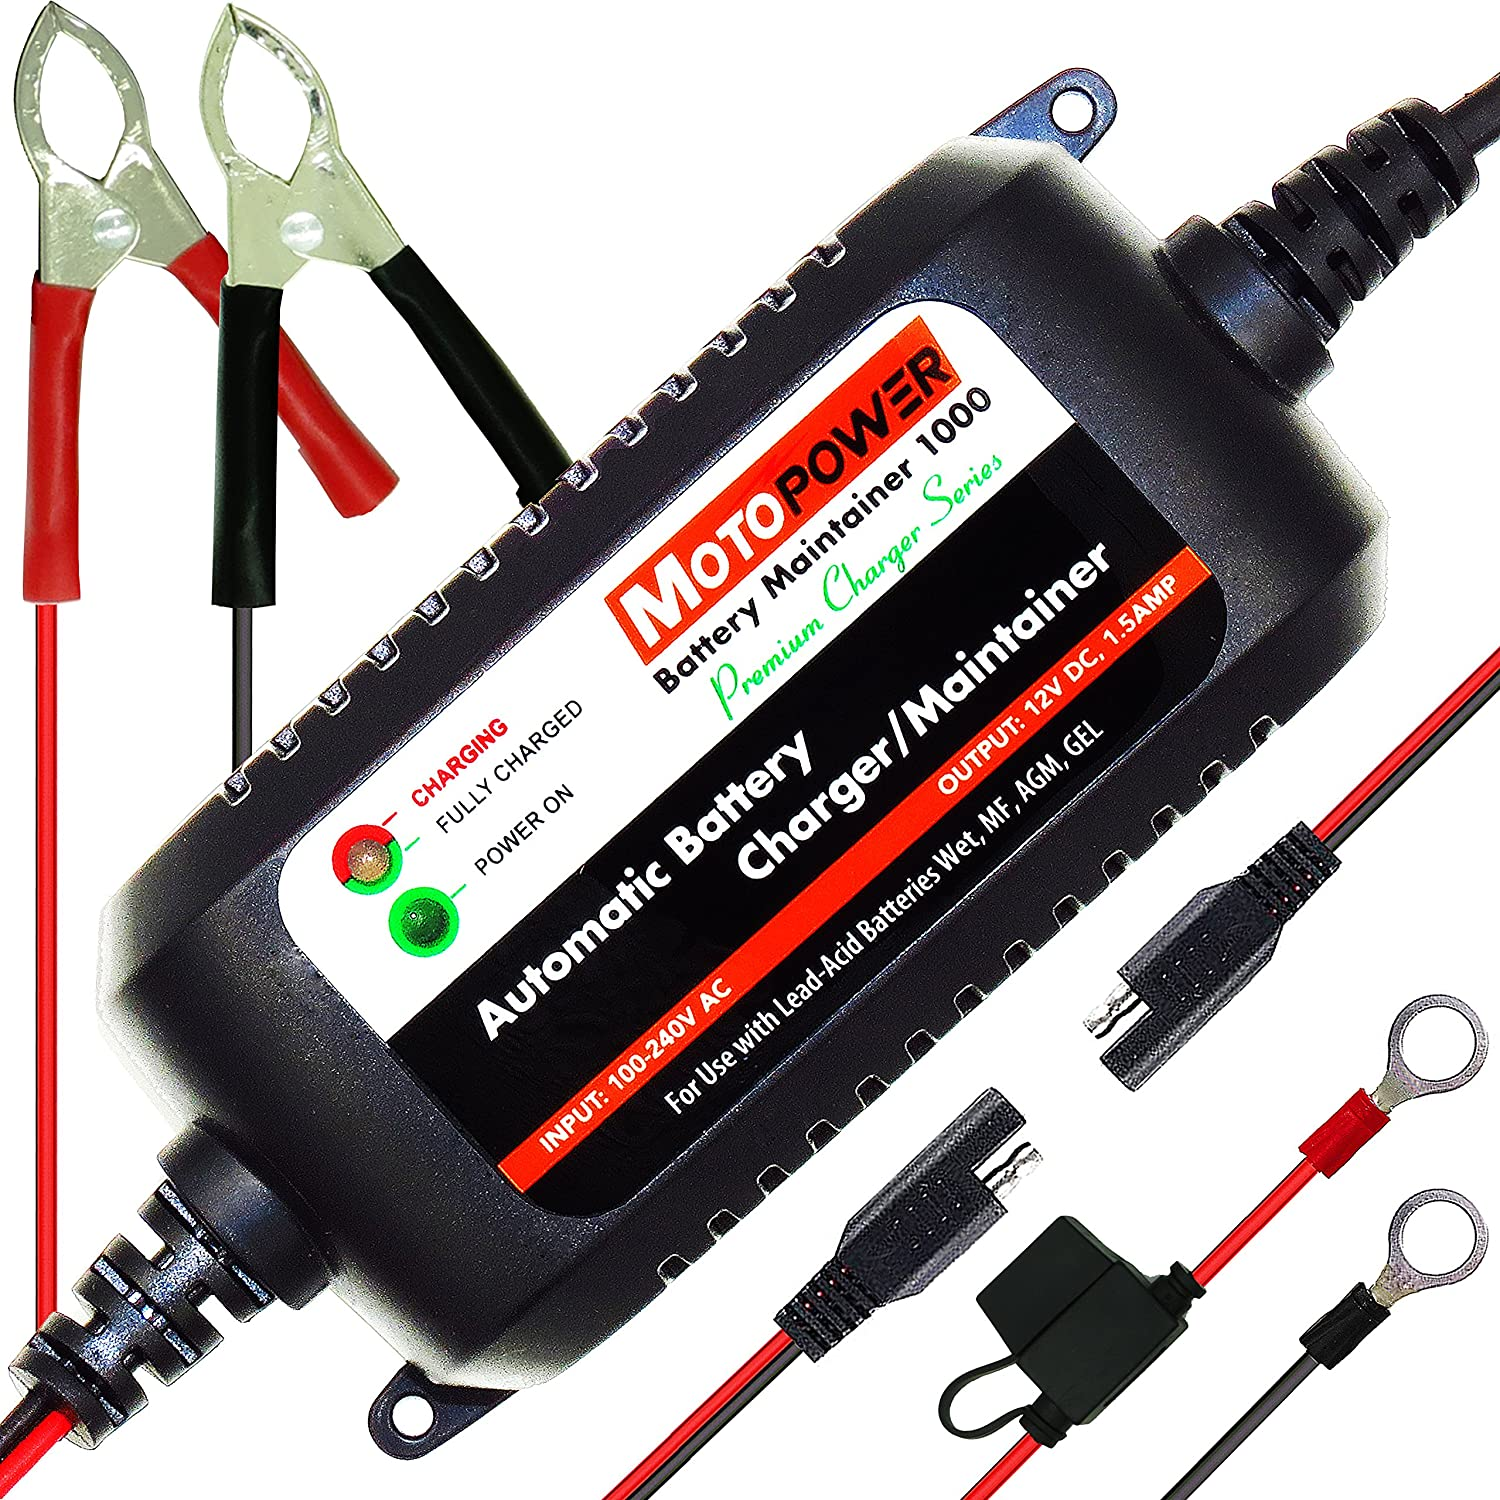 Motopower Mp00206a 12v 15amp Fully Automatic Battery 12 Volt 24 Lead Acid Charger Circuit Homemade Maintainer For Cars Motorcycles Atvs Rvs Powersports Boat And More